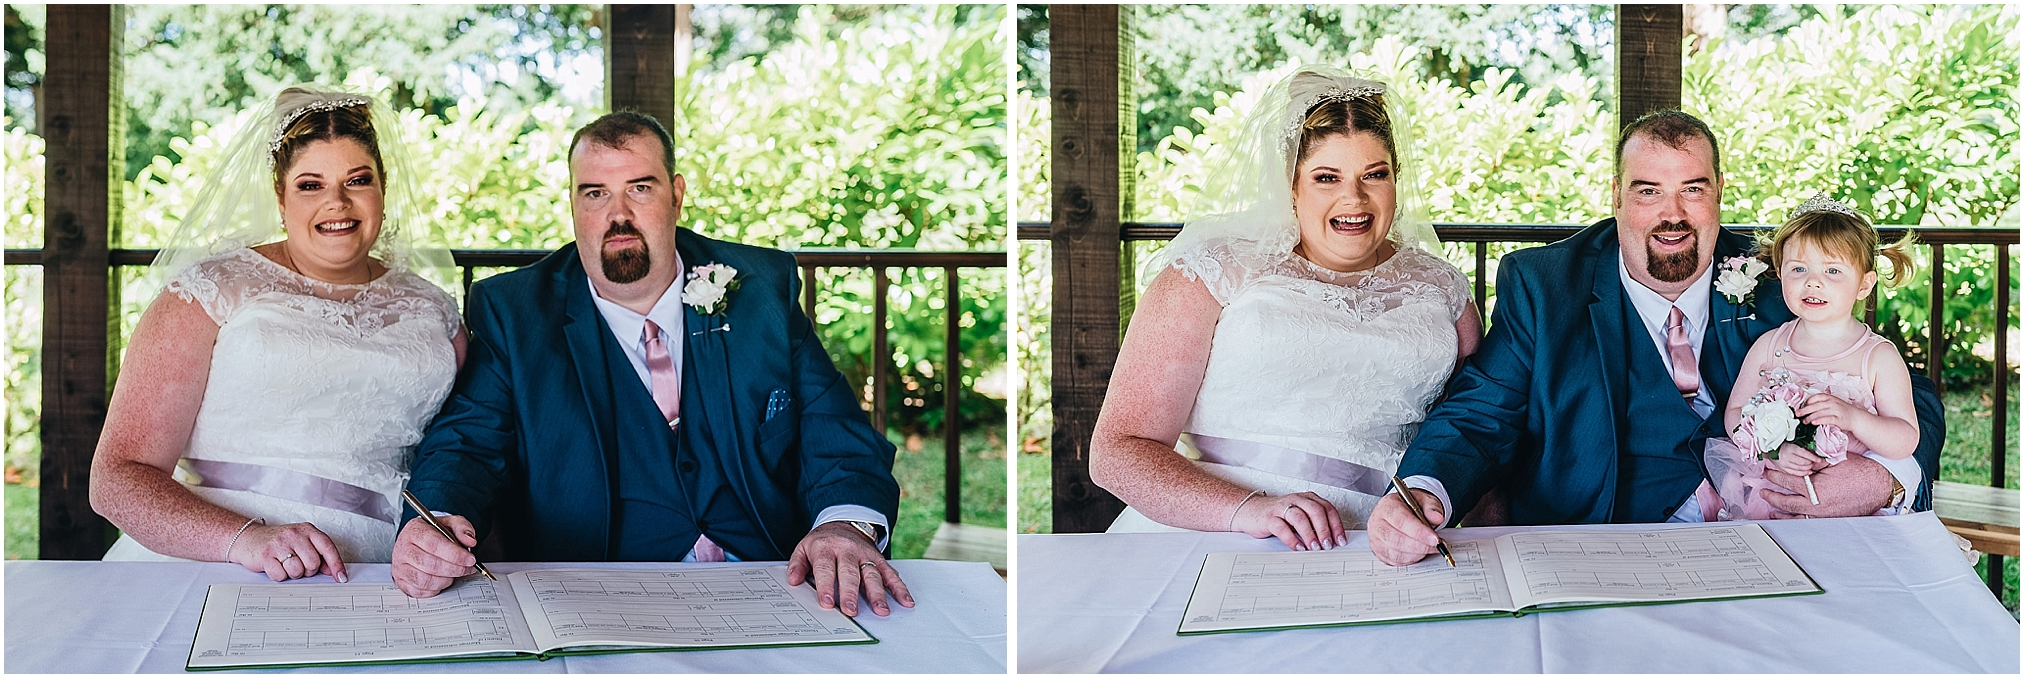 Staffordshire_wedding_photographer-55.jpg